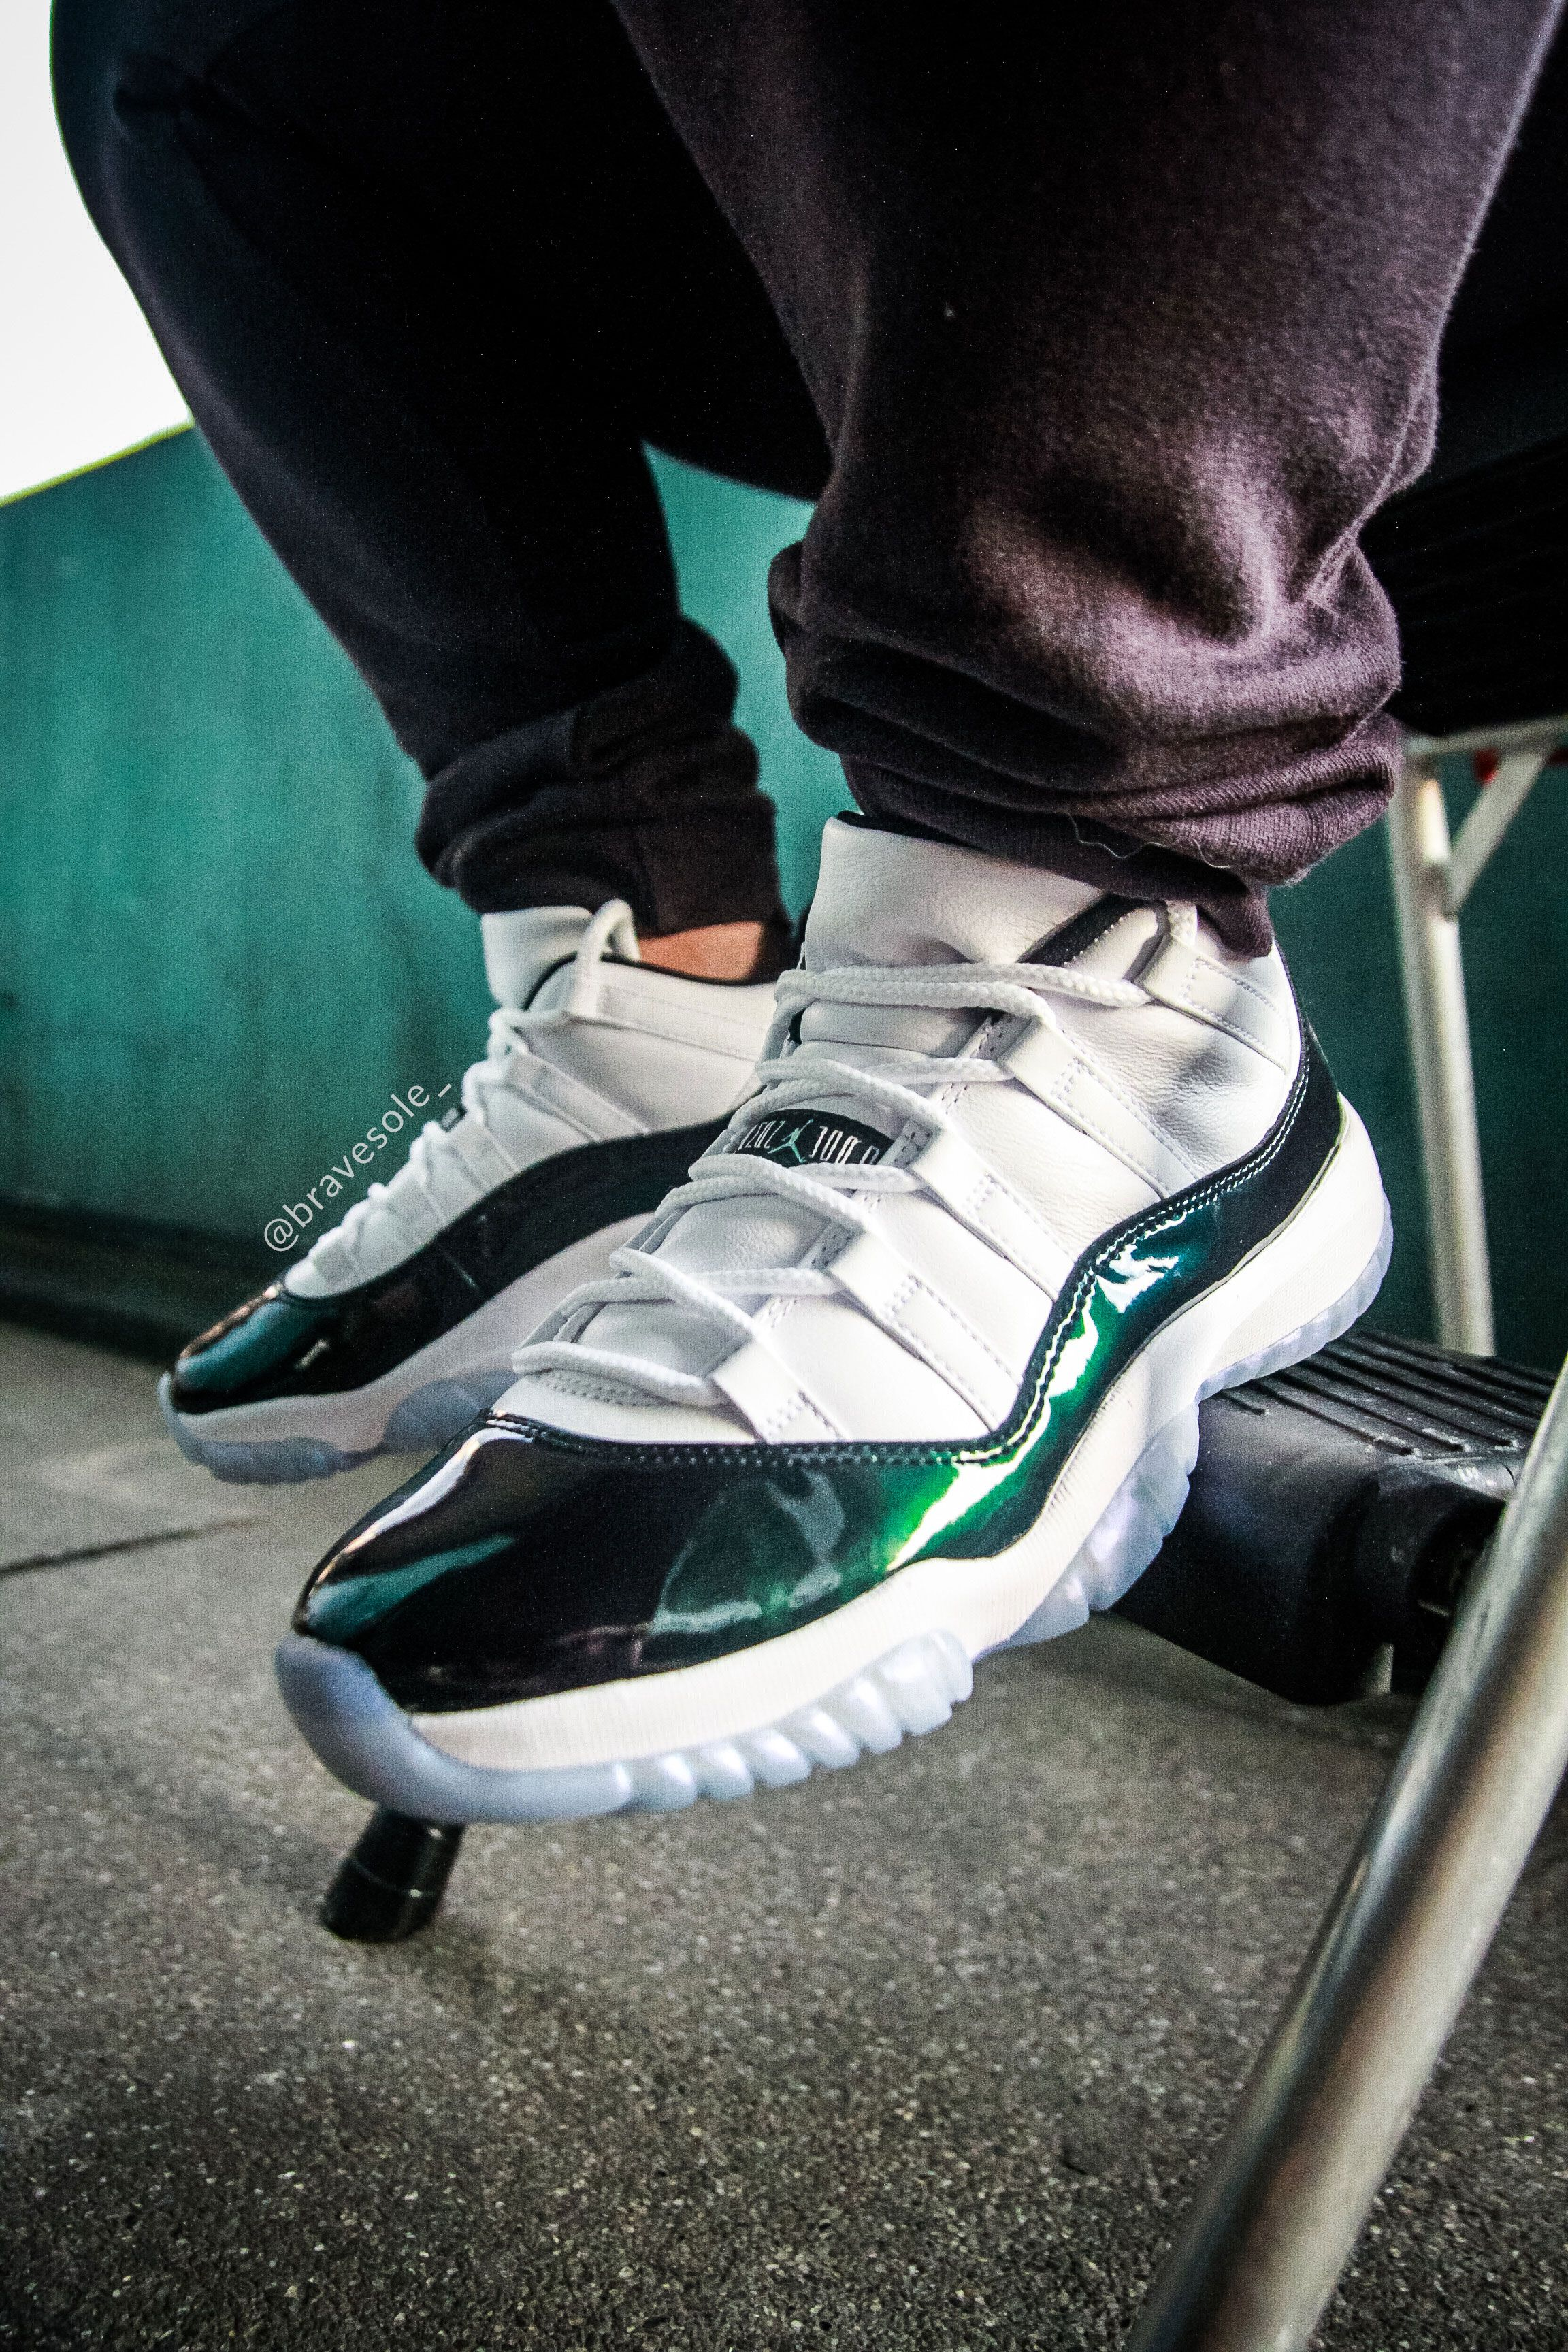 458ff88119d424 Air Jordan 11 Retro Low - Iridescent